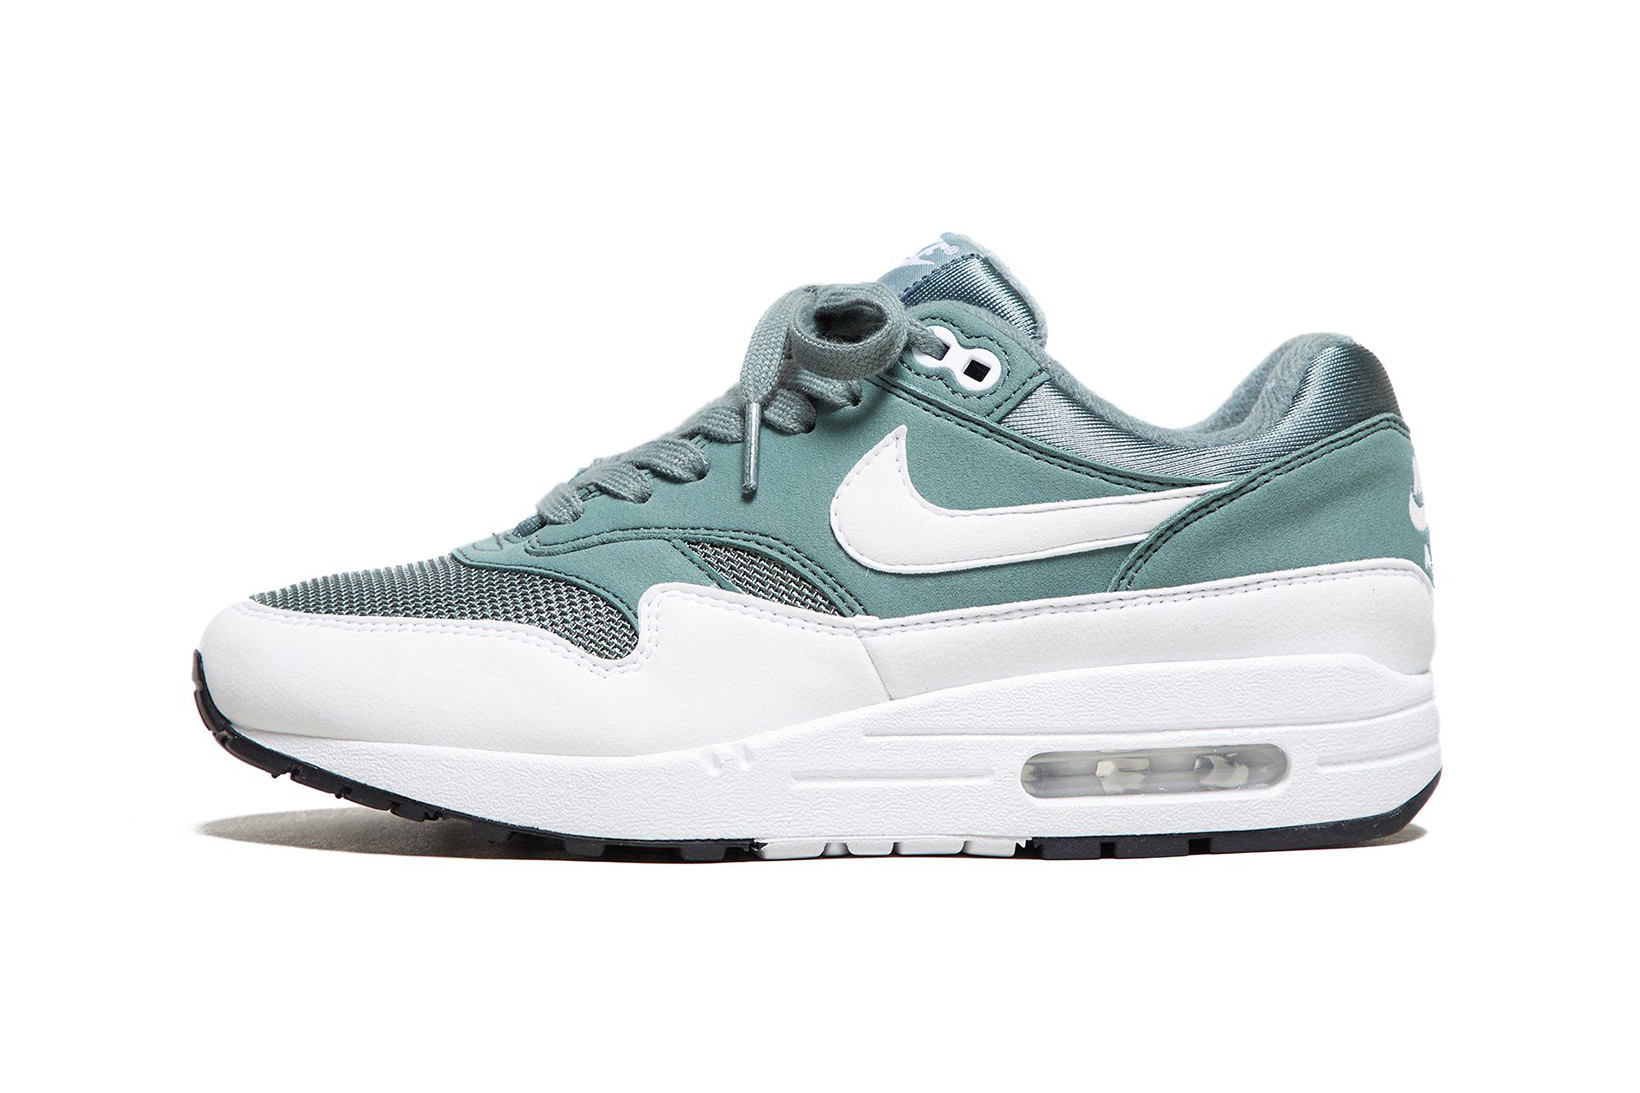 Nike Releases Air Max 1 in Green and